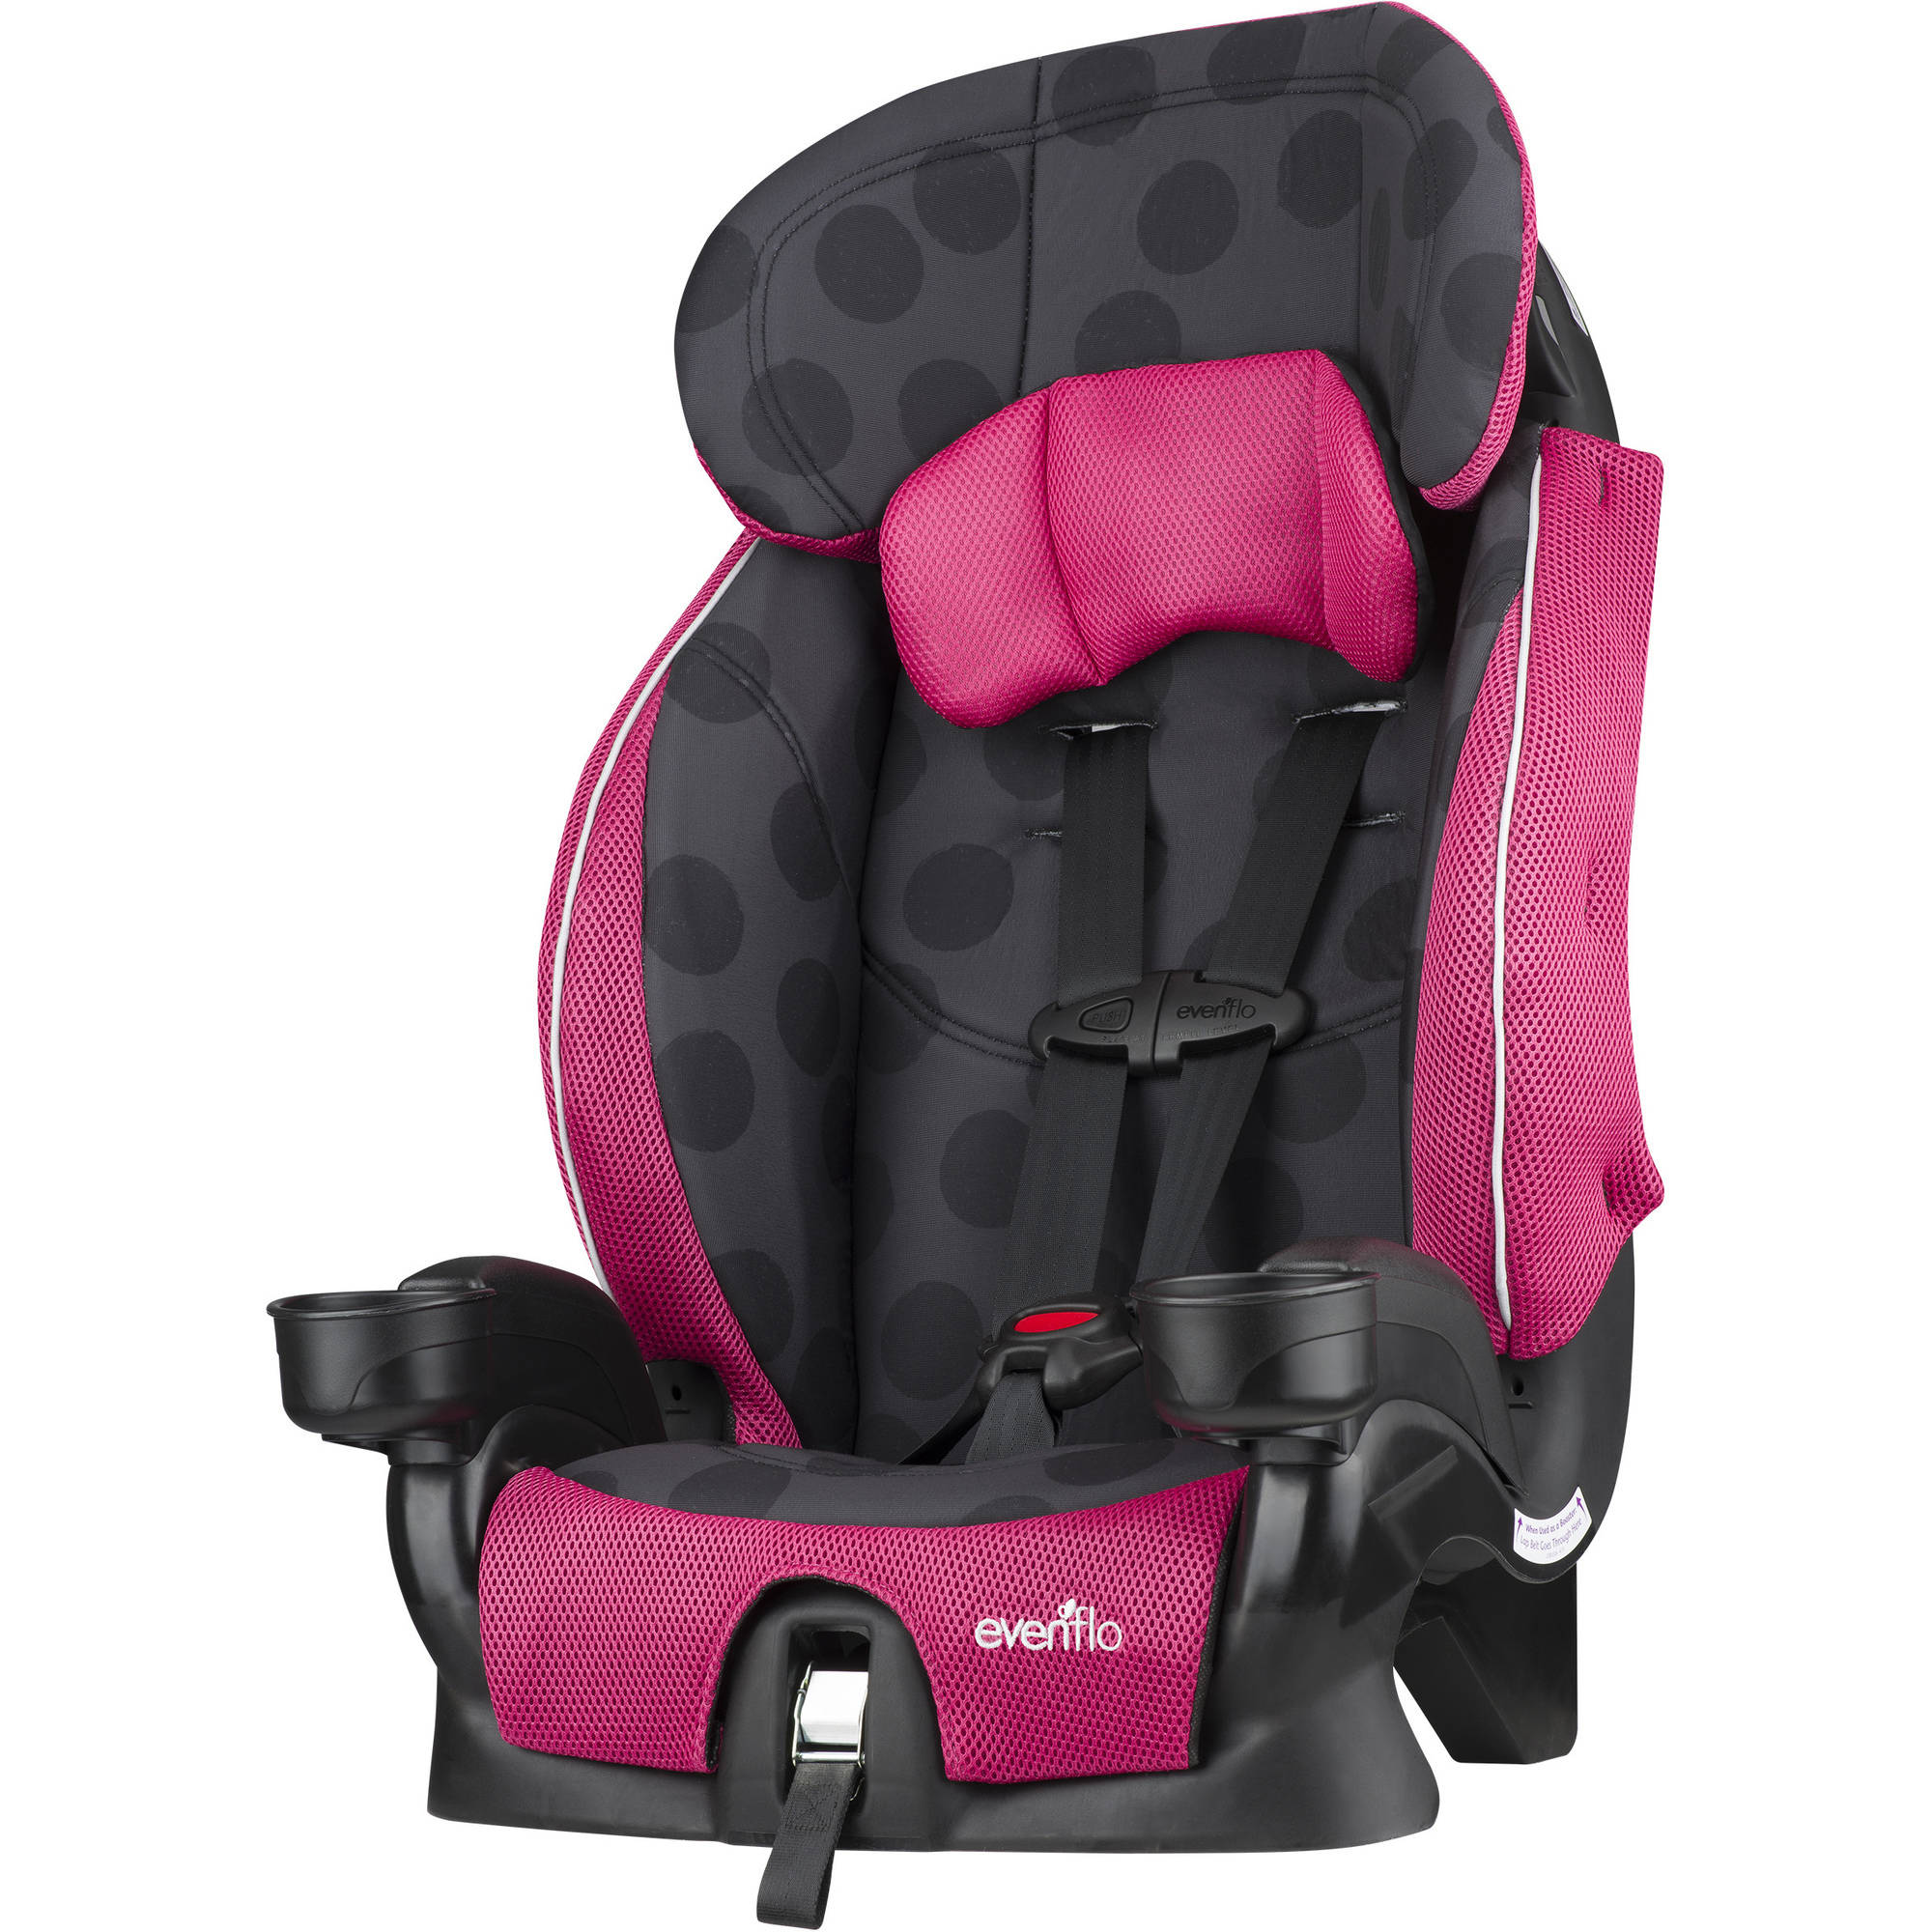 Evenflo Advanced Chase Lx Harness Booster Seat, Dotty Flamingo